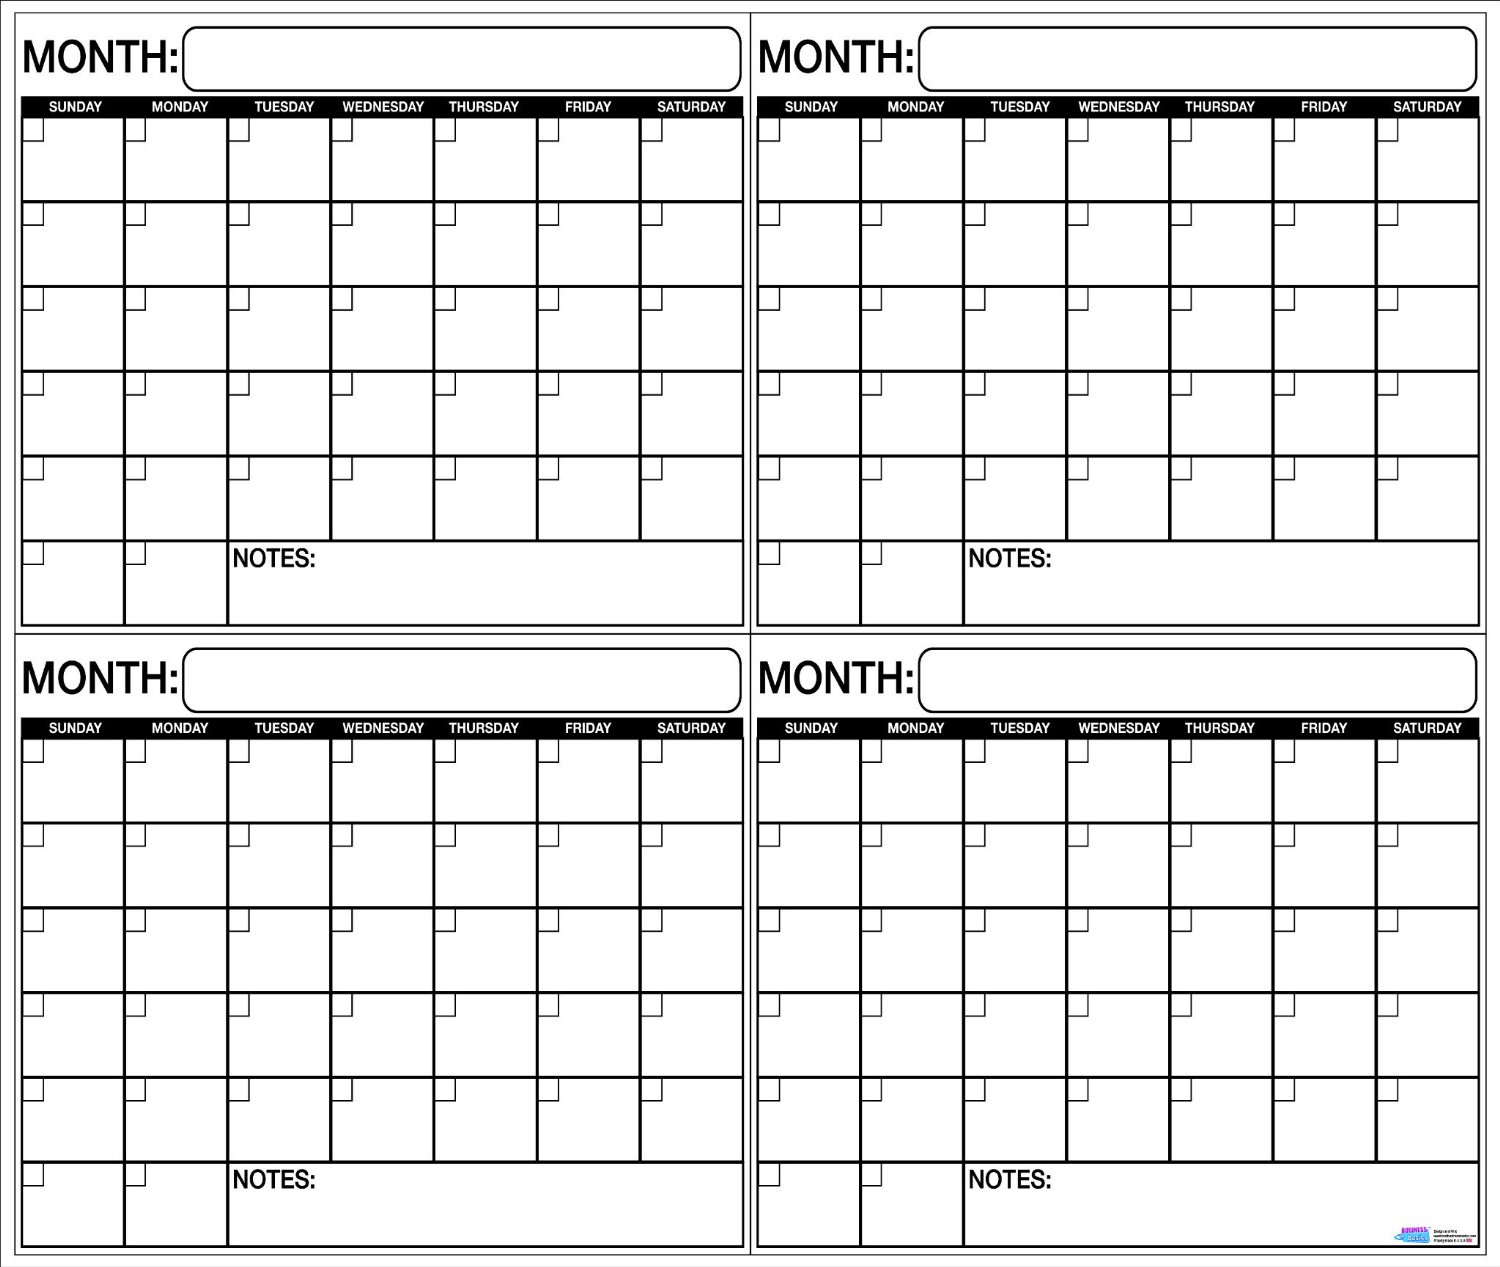 Large Calendar Planner : Laminated wet or dry erase quarterly wall calendar planner